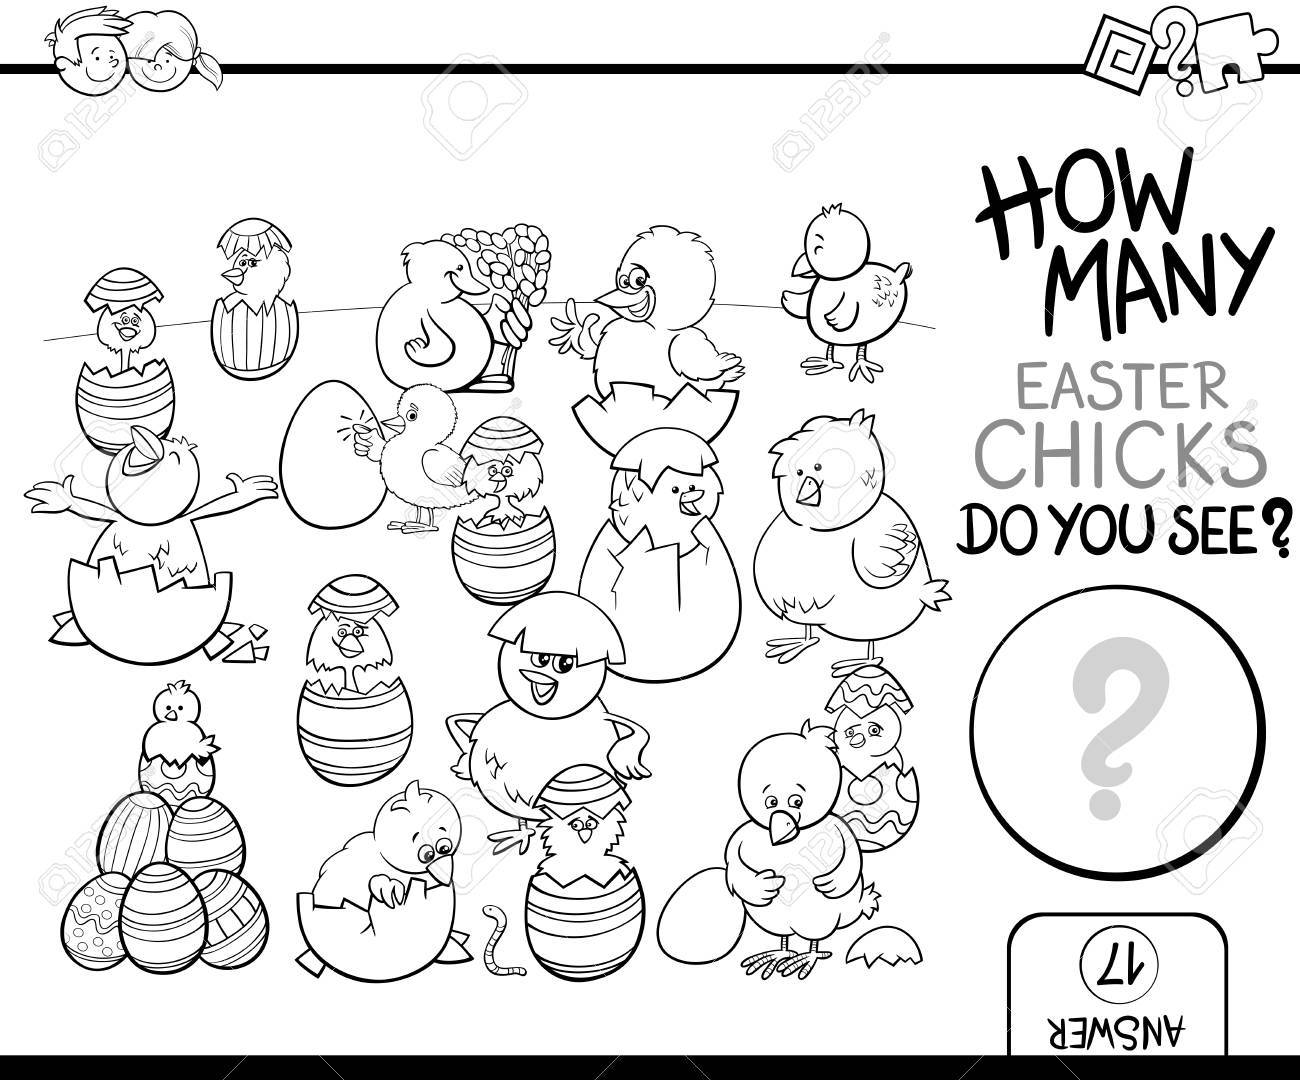 black and white cartoon illustration of educational counting